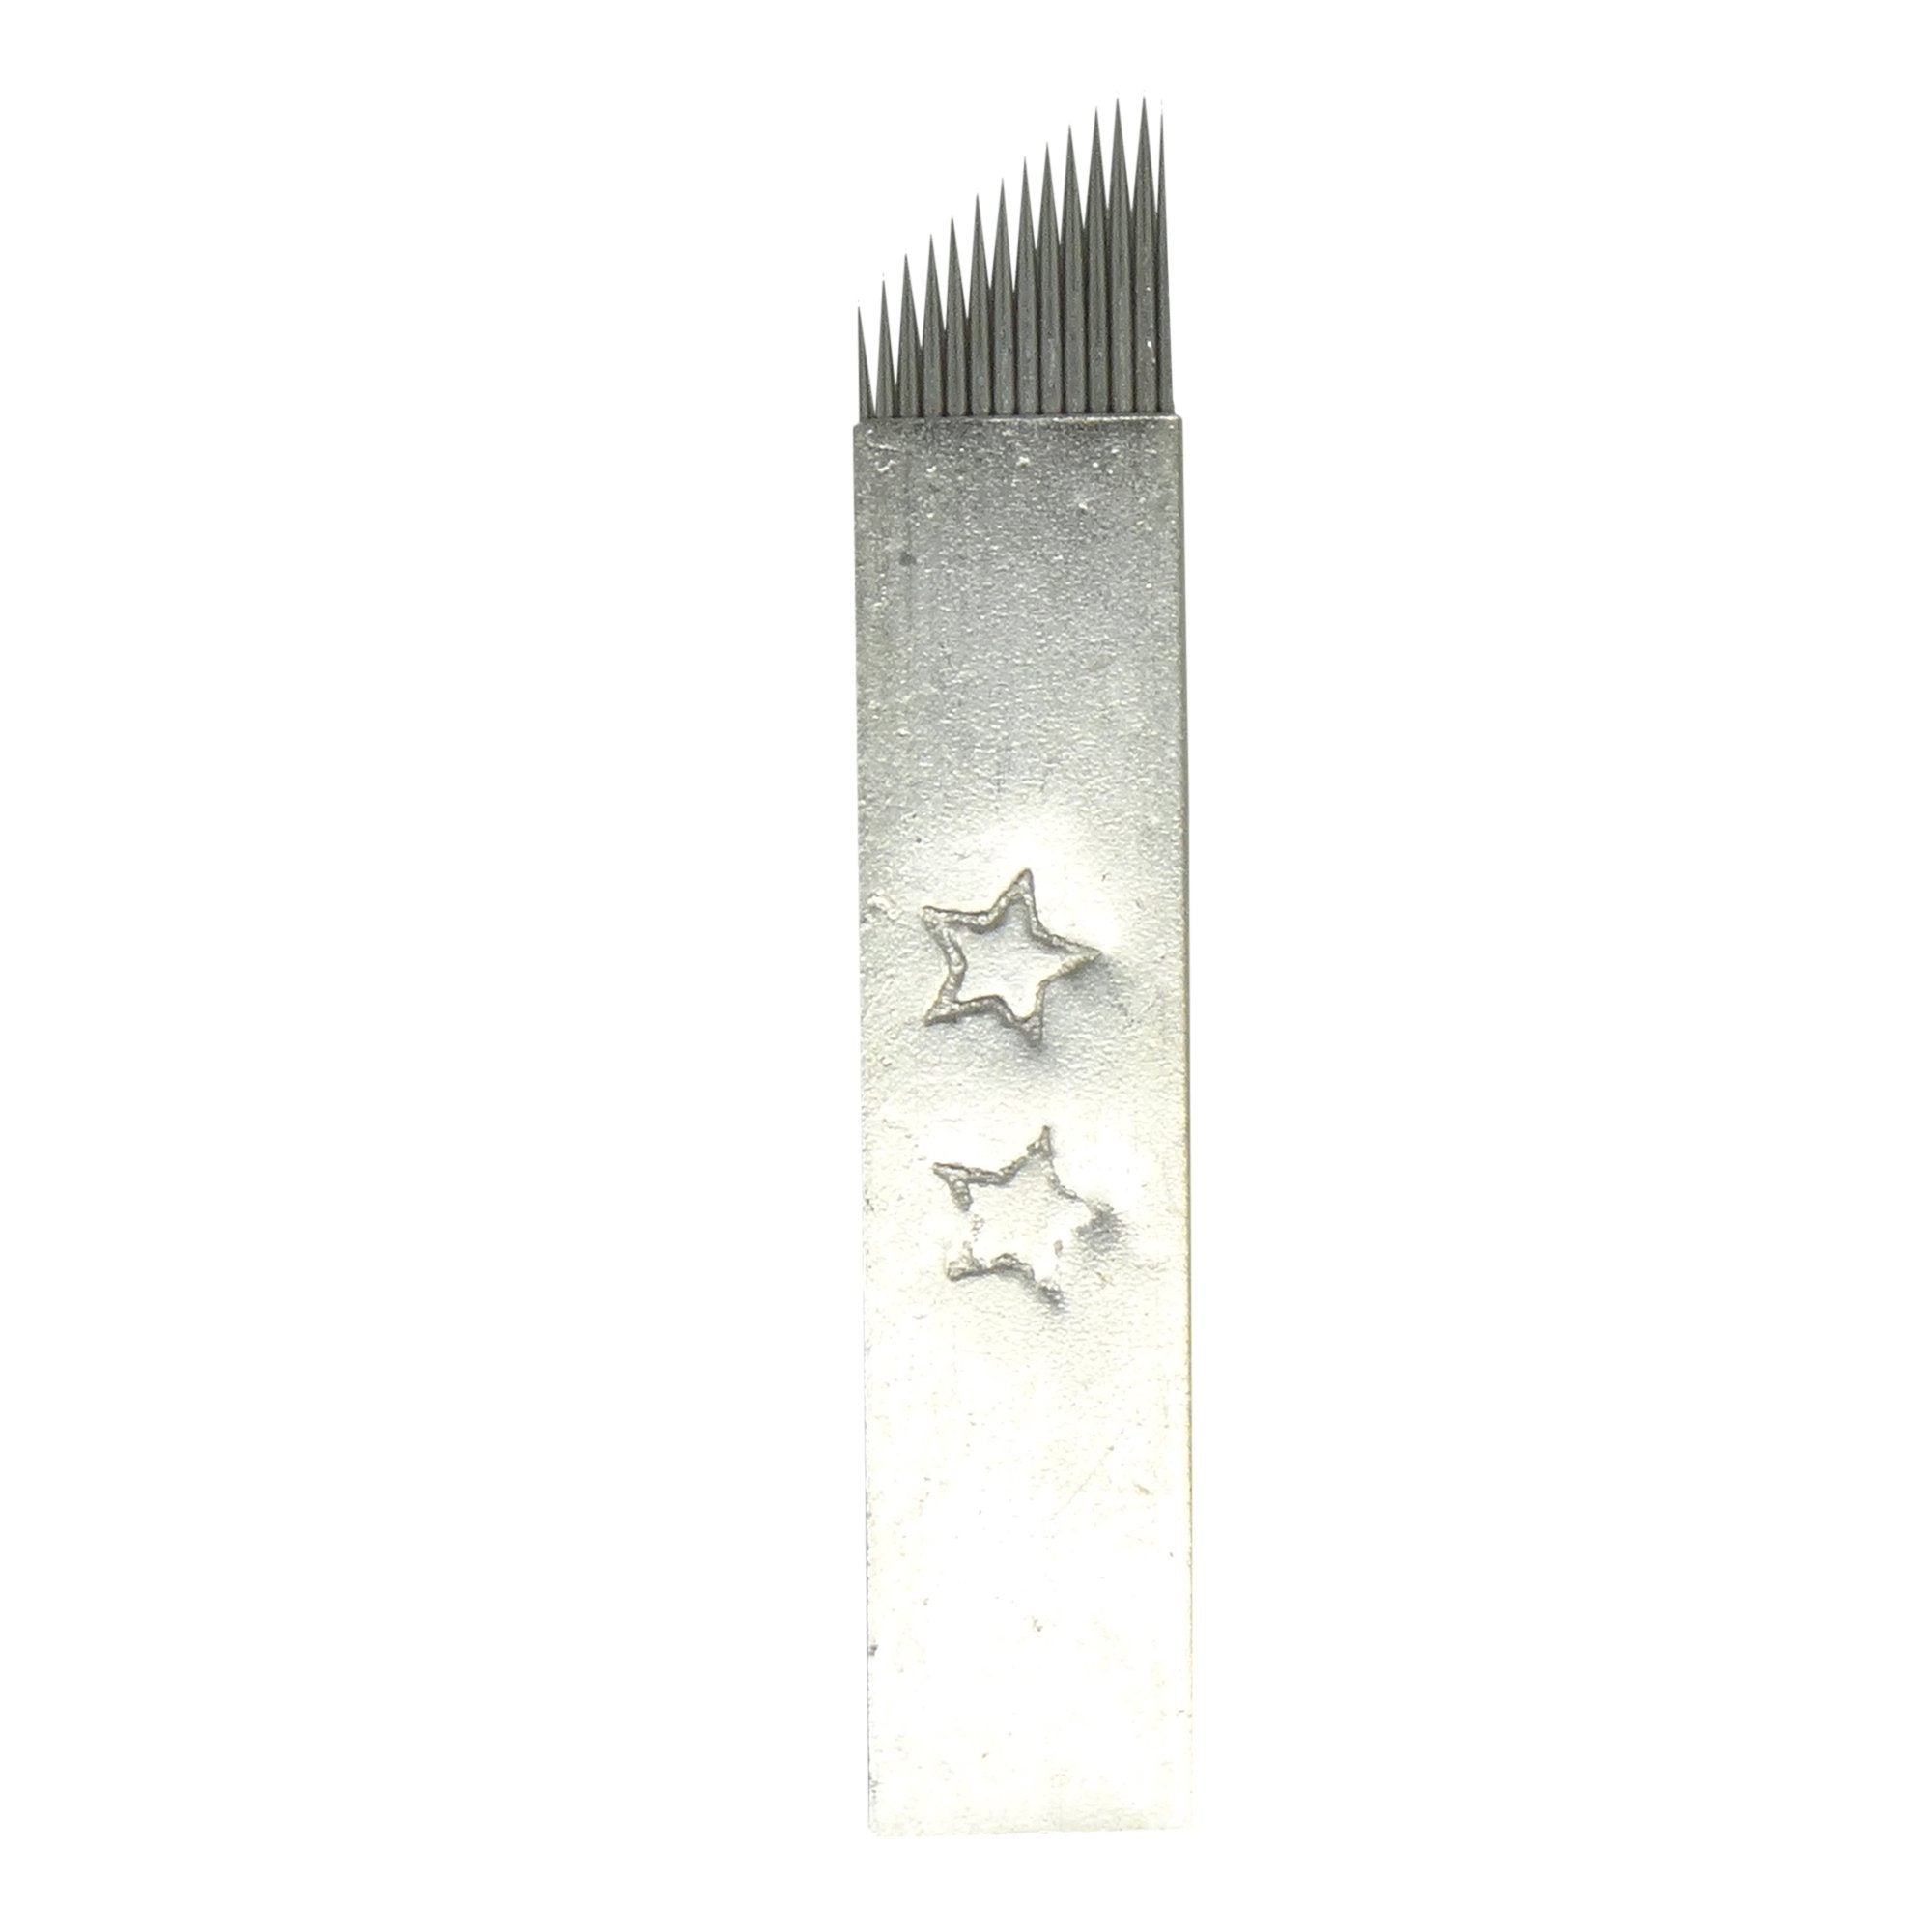 Microblading Needles | 2 Star Steel Cover - #14CF - Microblade Supplies